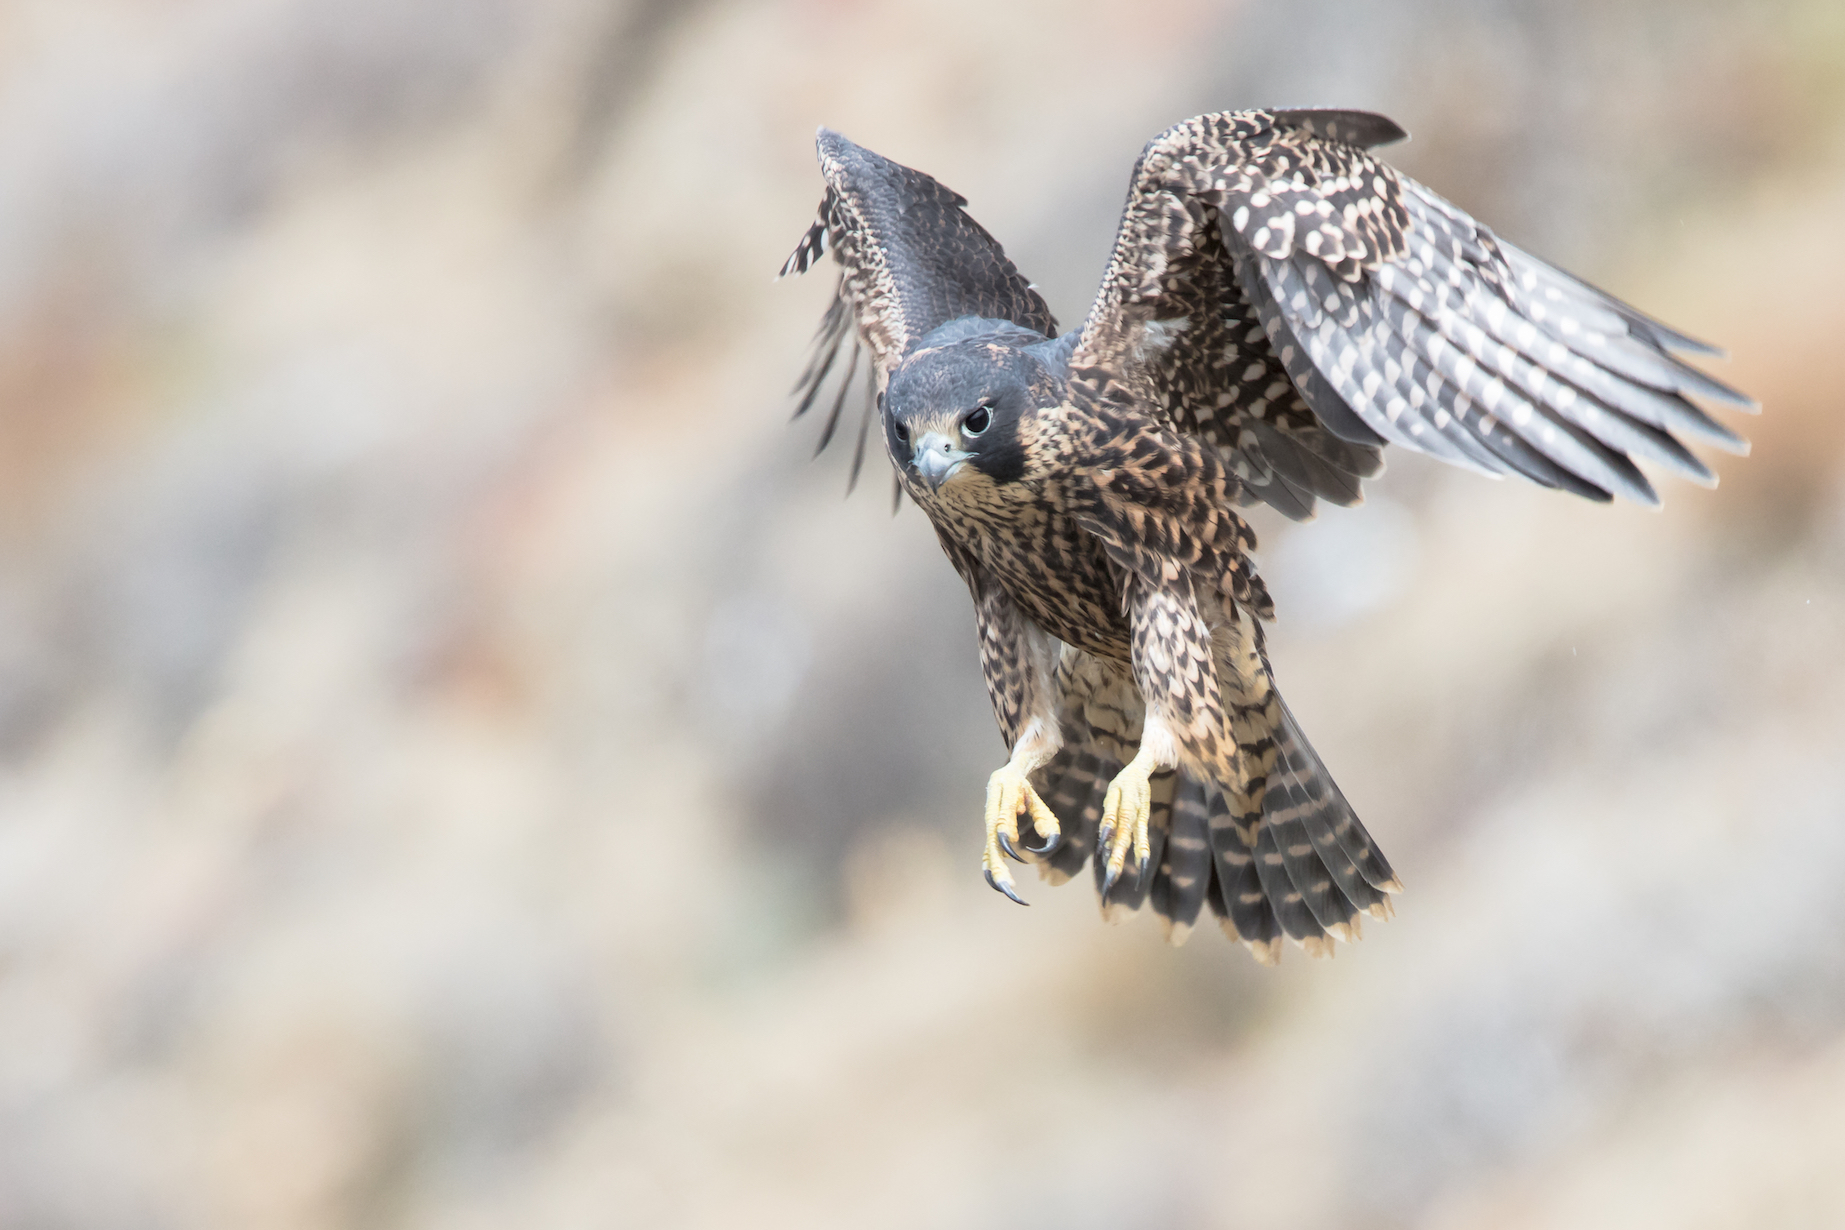 The flight patterns of falcons could help researchers develop drones specifically designed to take down other rogue drones.